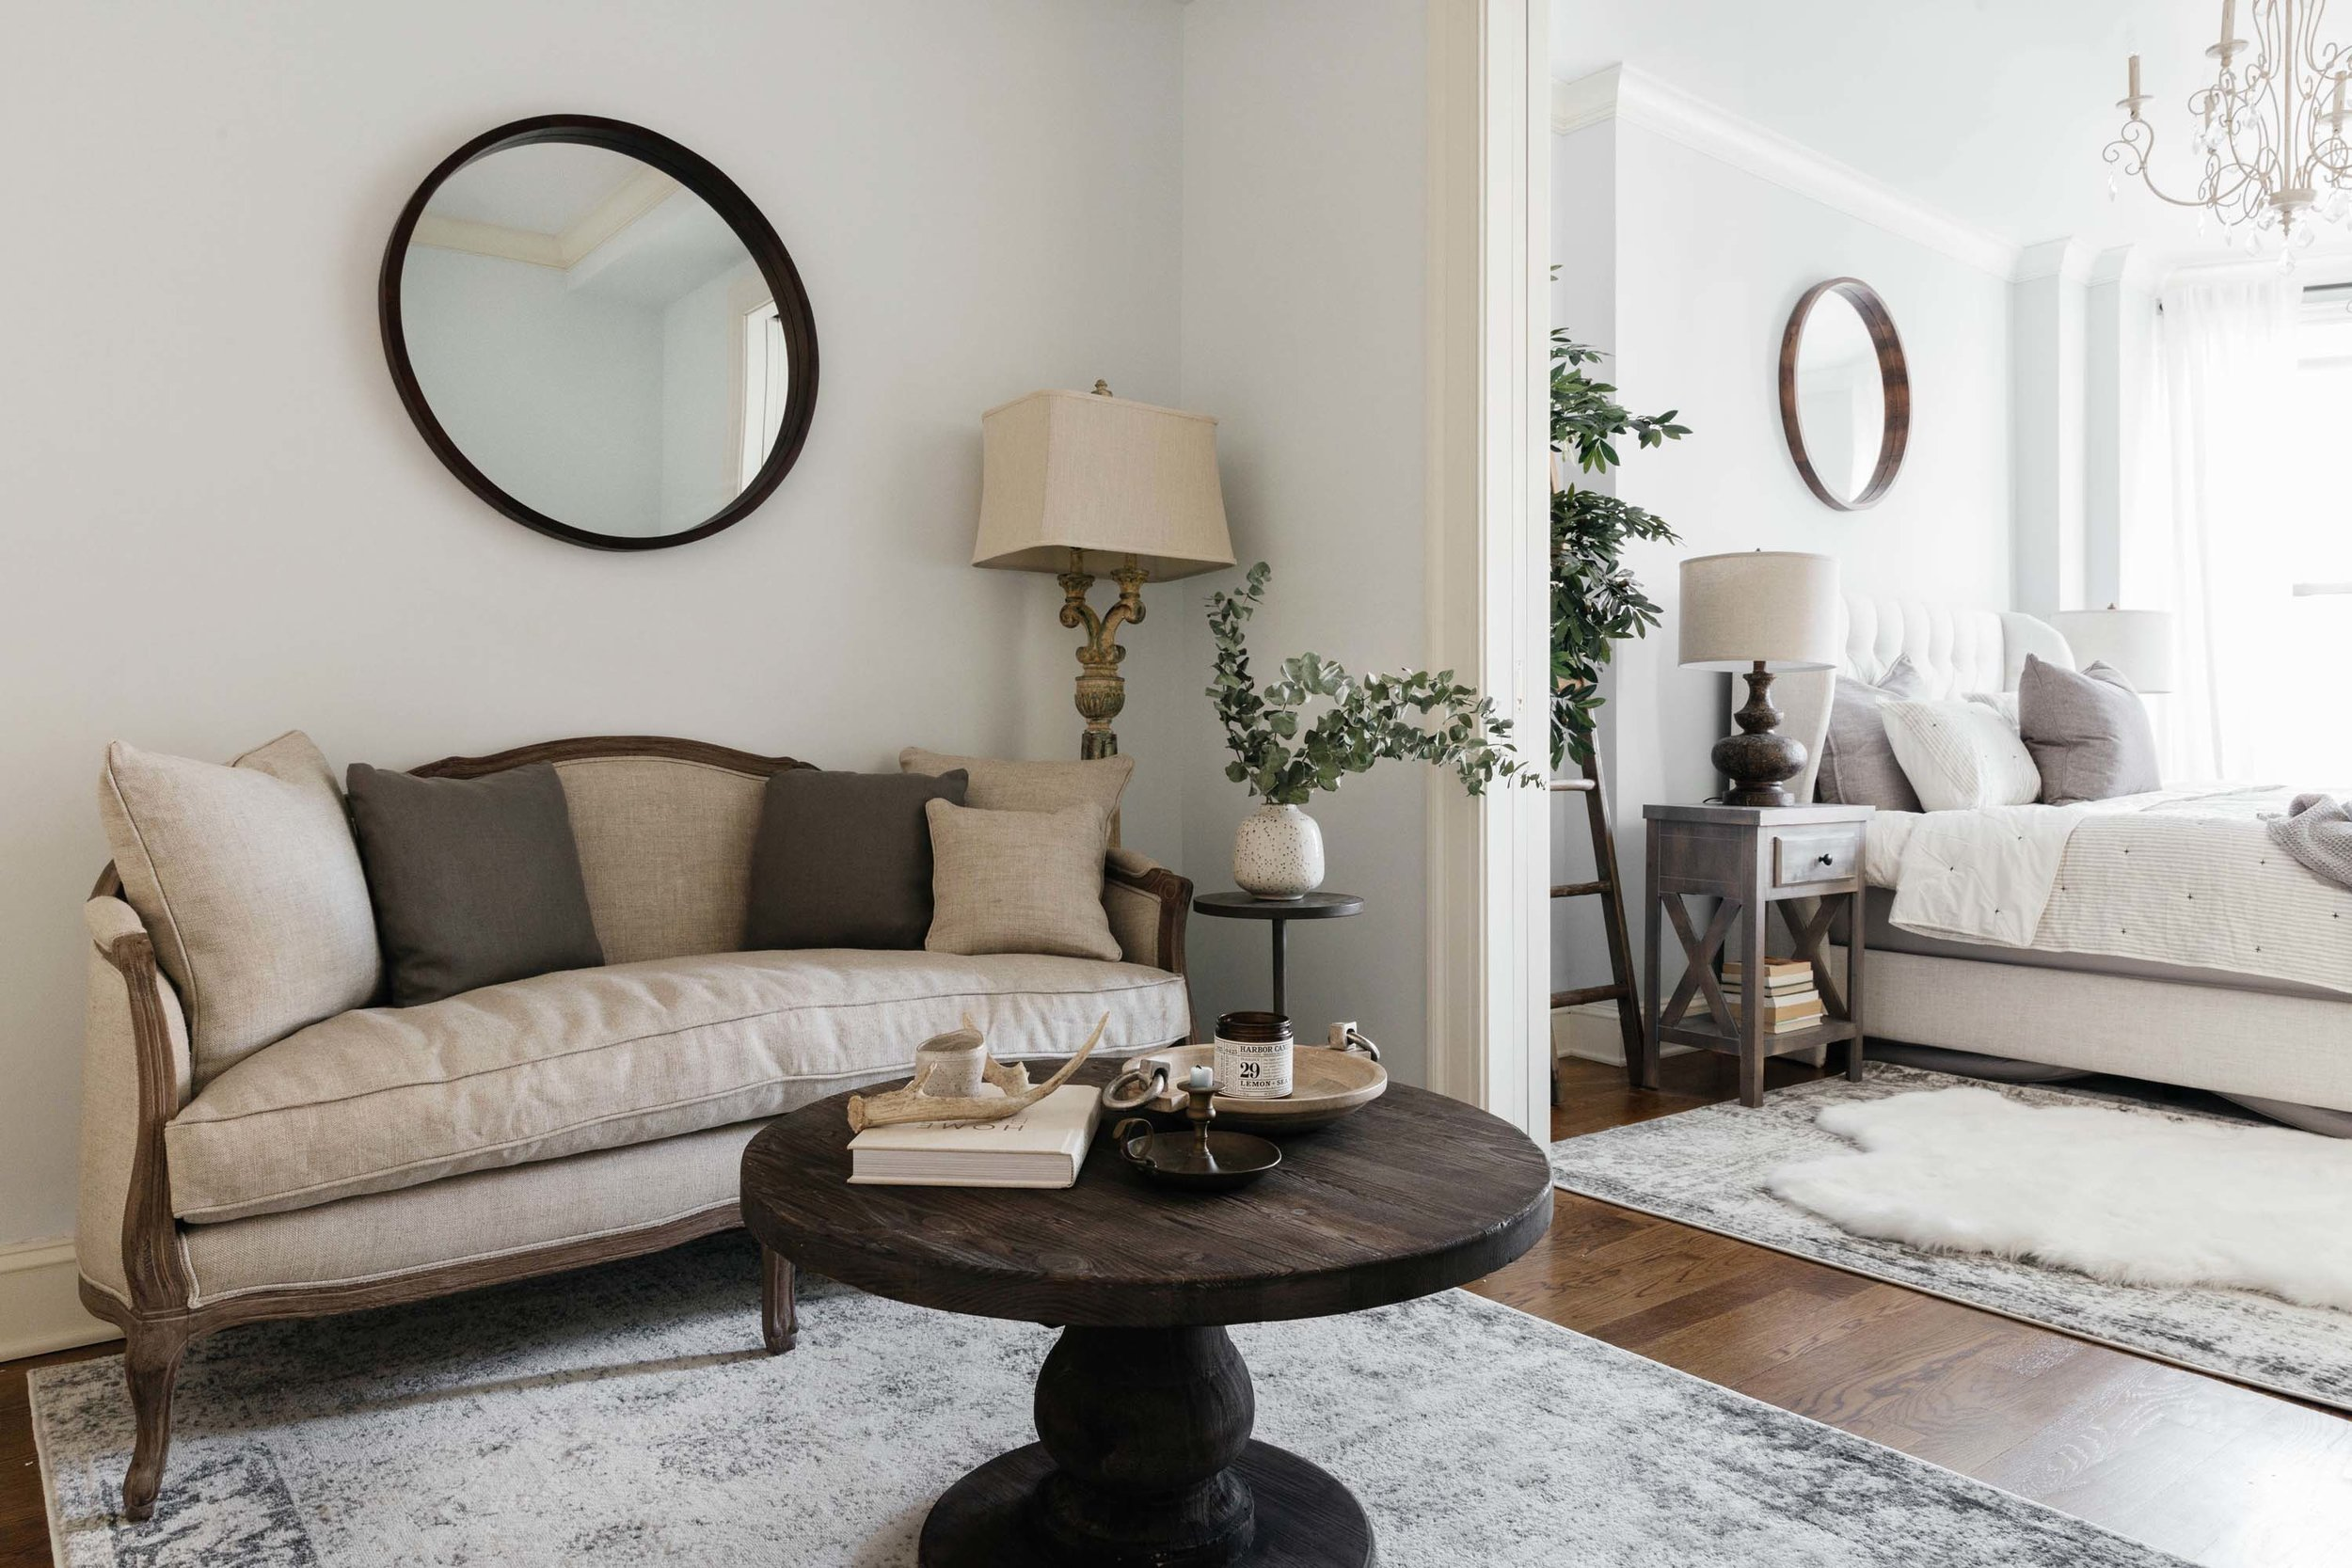 Townhouse living room area with beige colored furniture